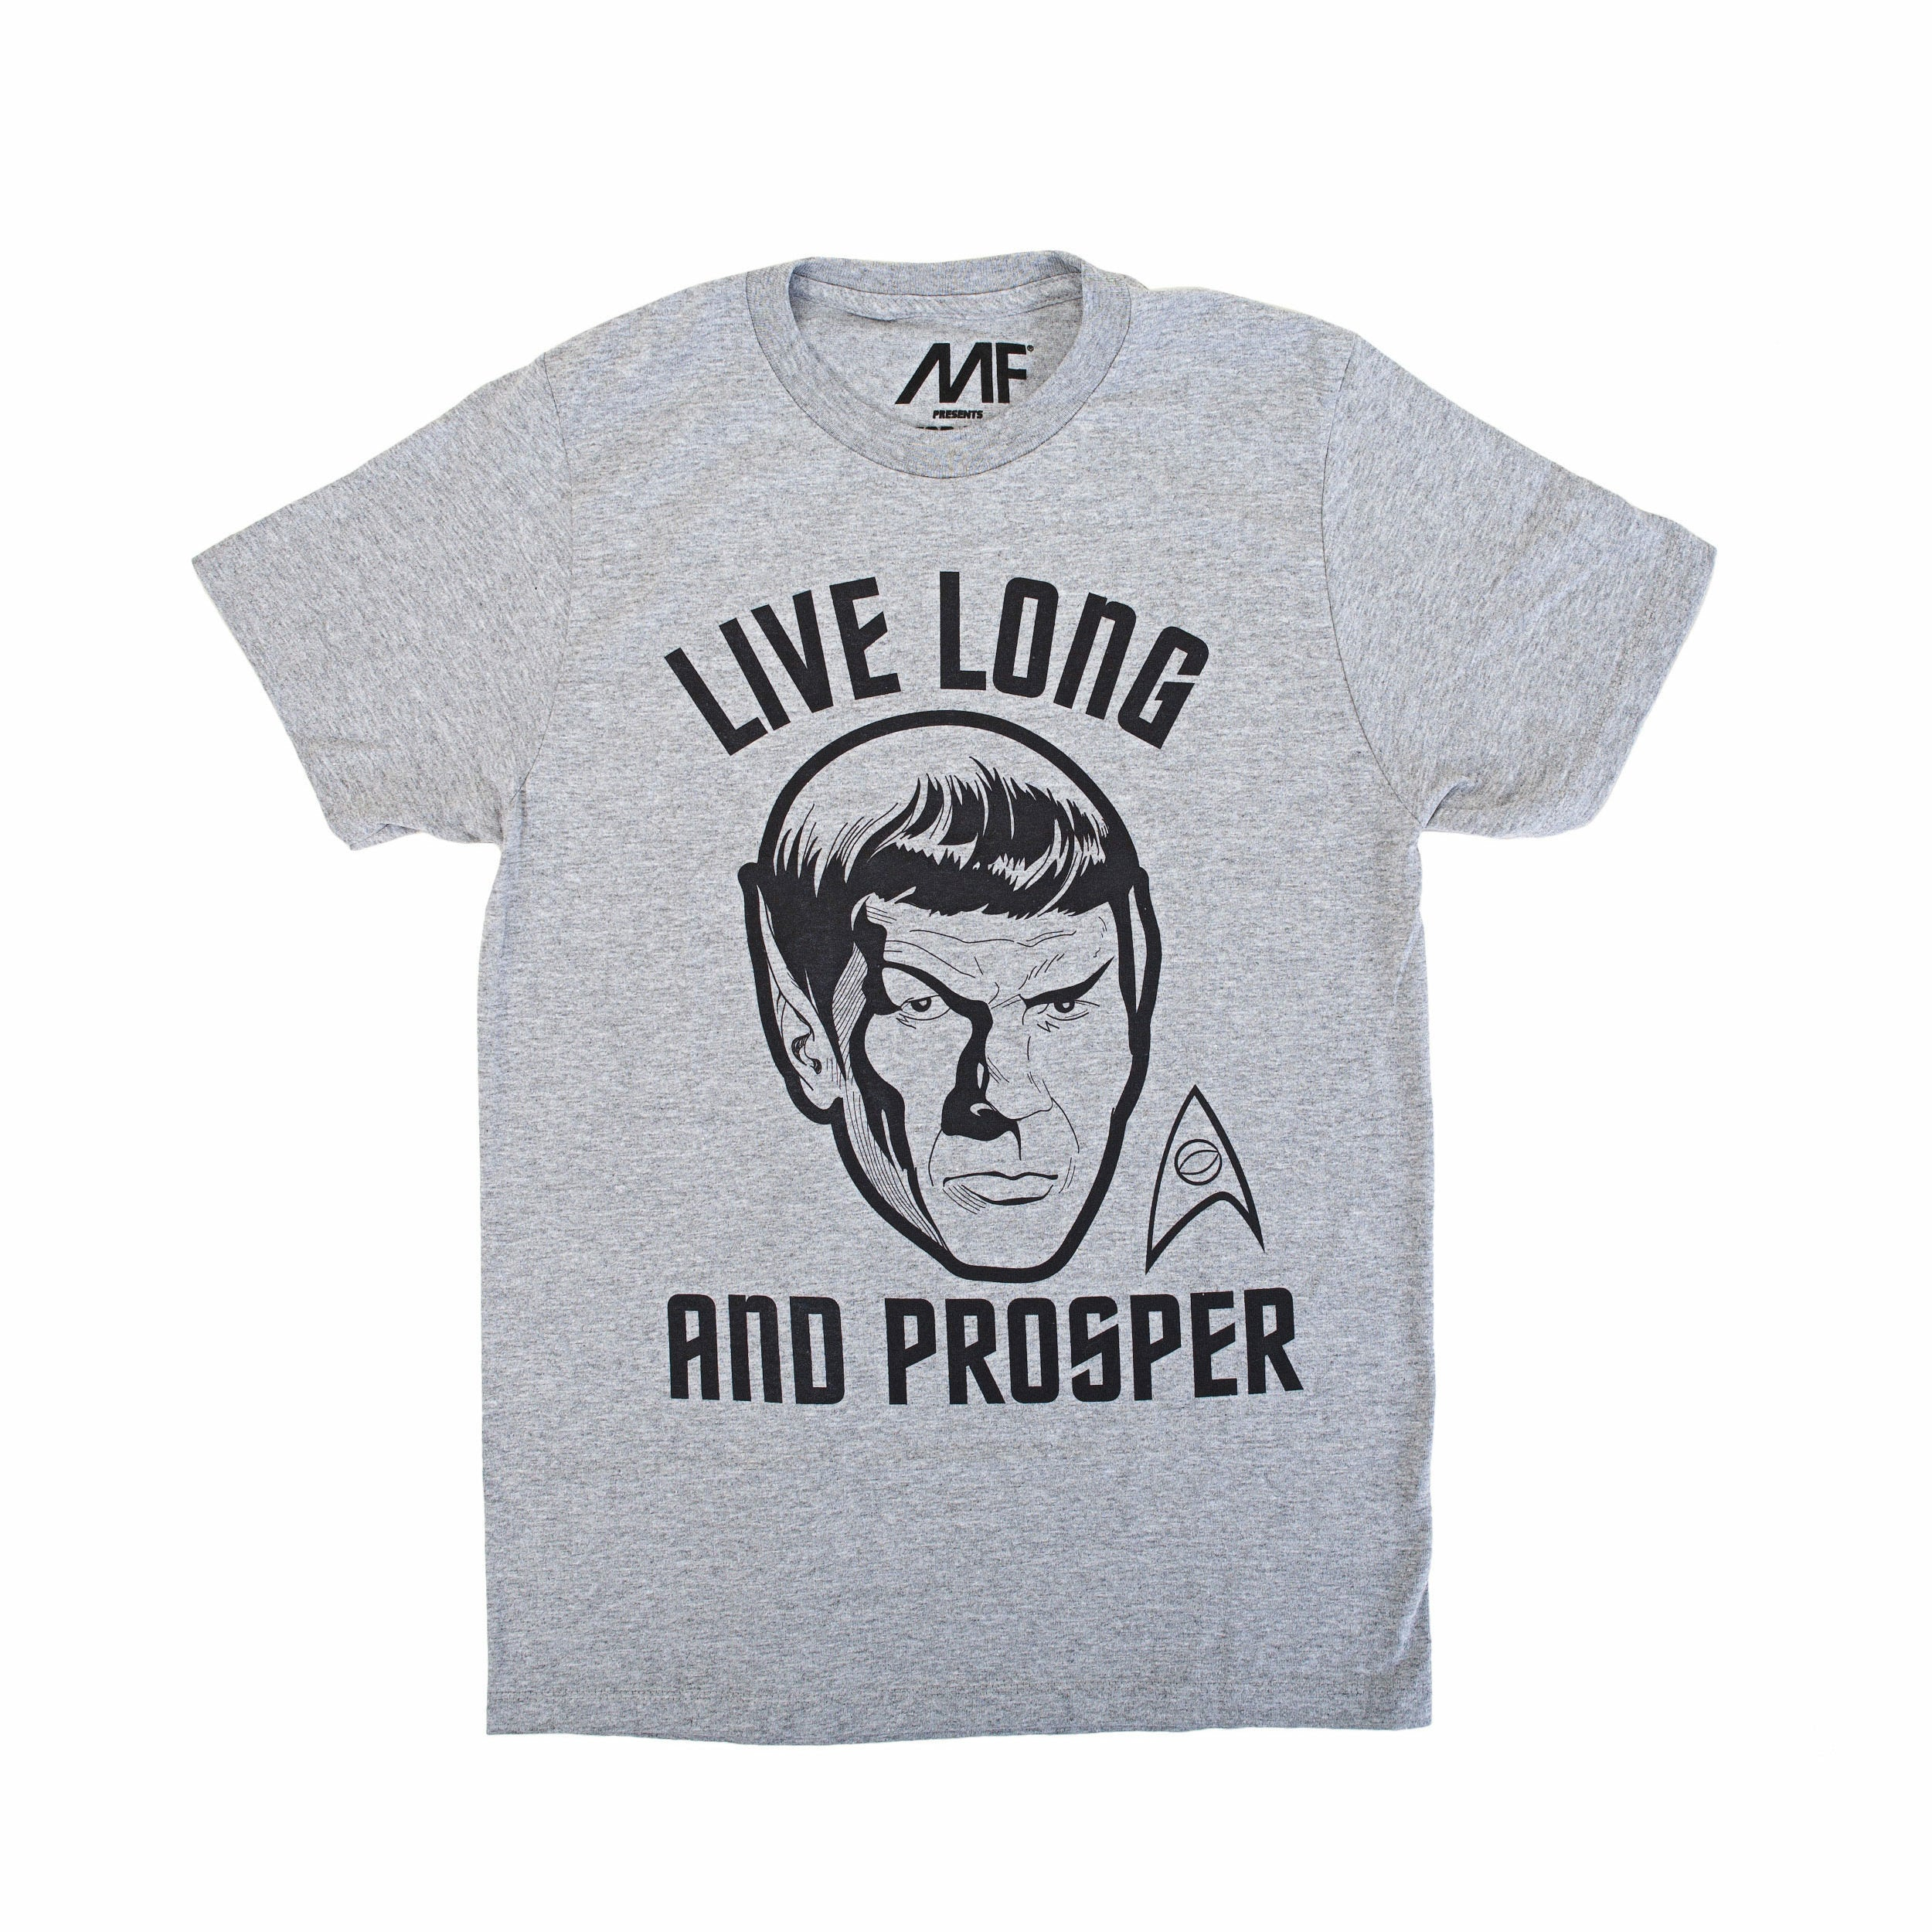 Star Trek Live Long and Prosper Graphic T-Shirt